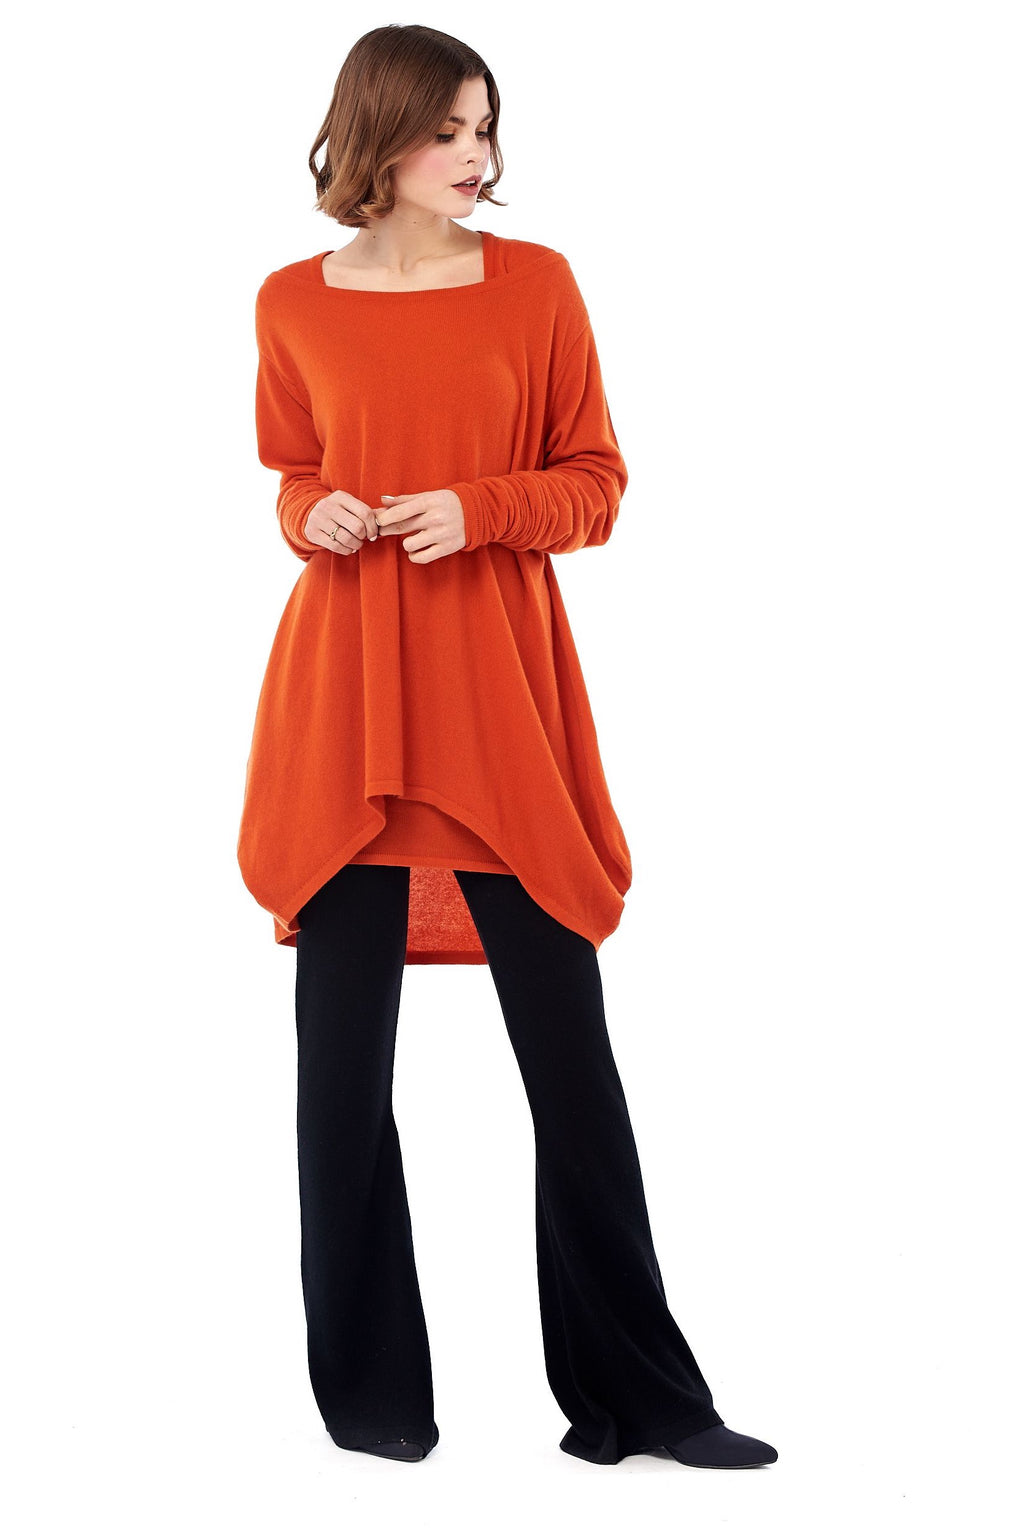 Pure Cashmere Dutch Jumper Orange - MUDRA